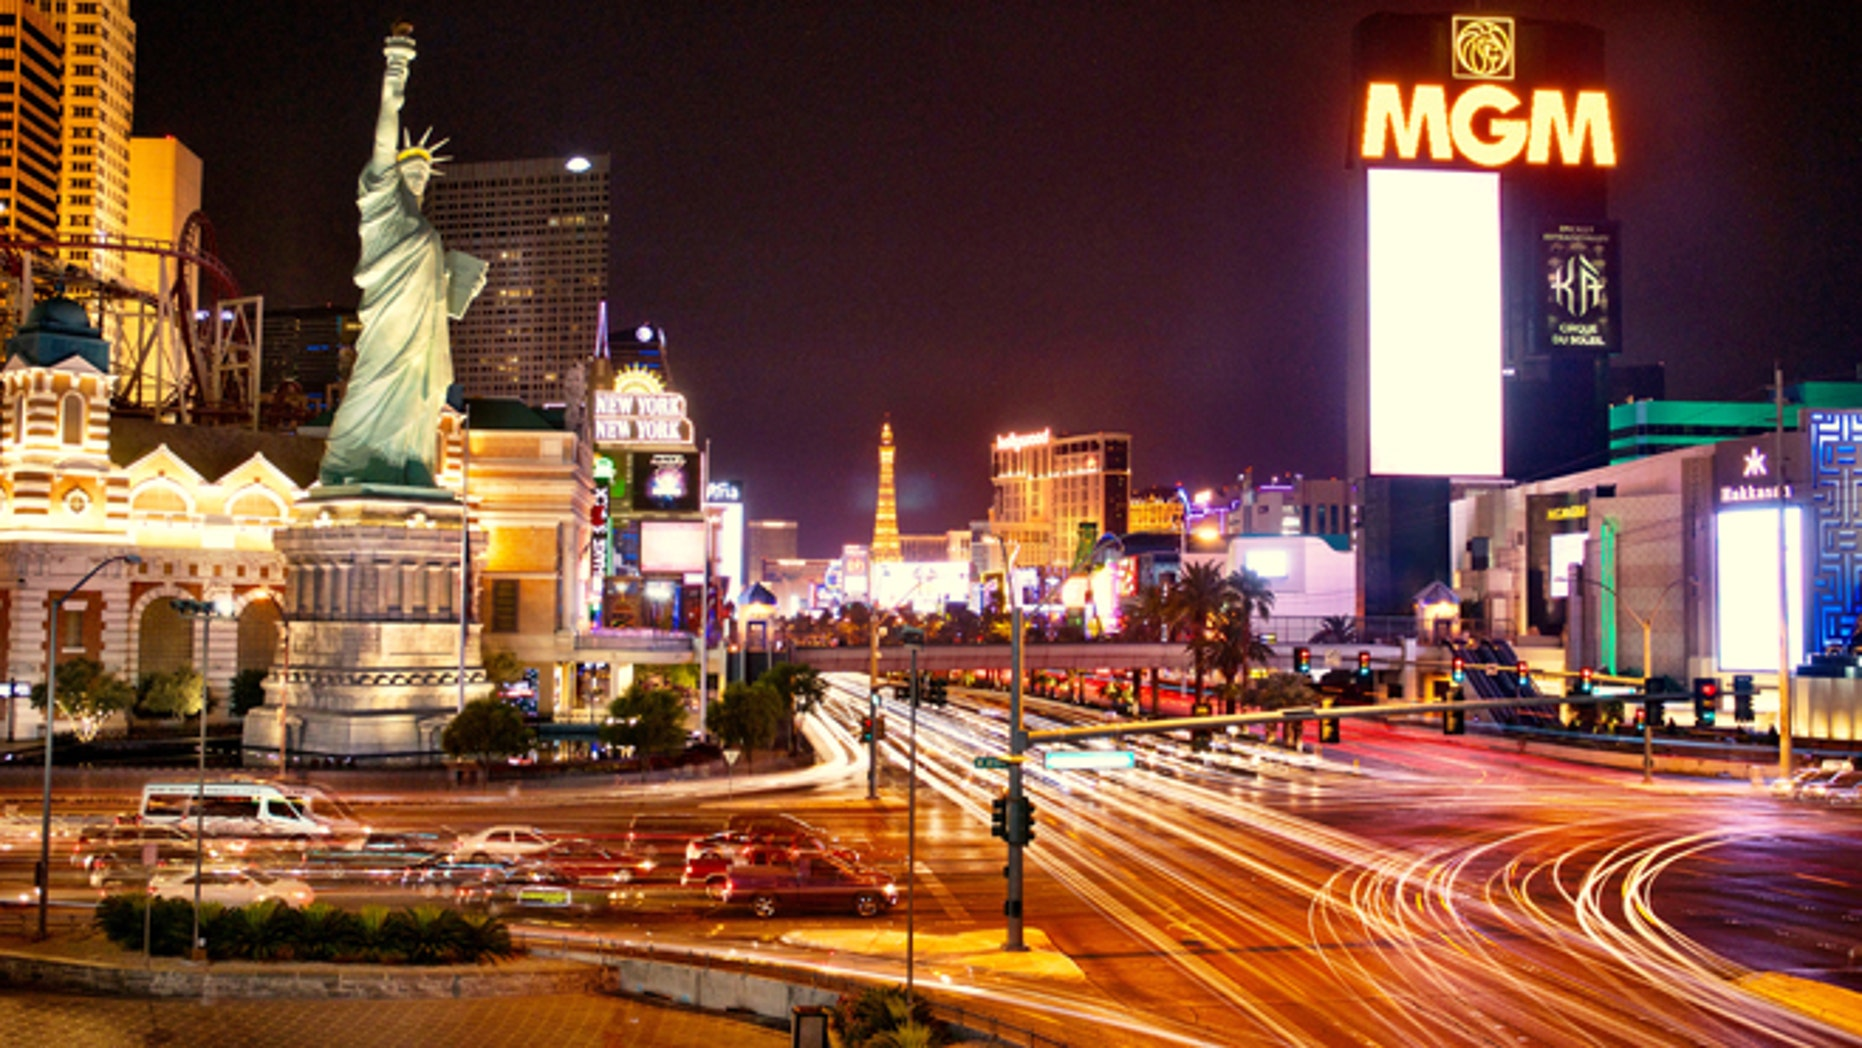 The Las Vegas strip at night.